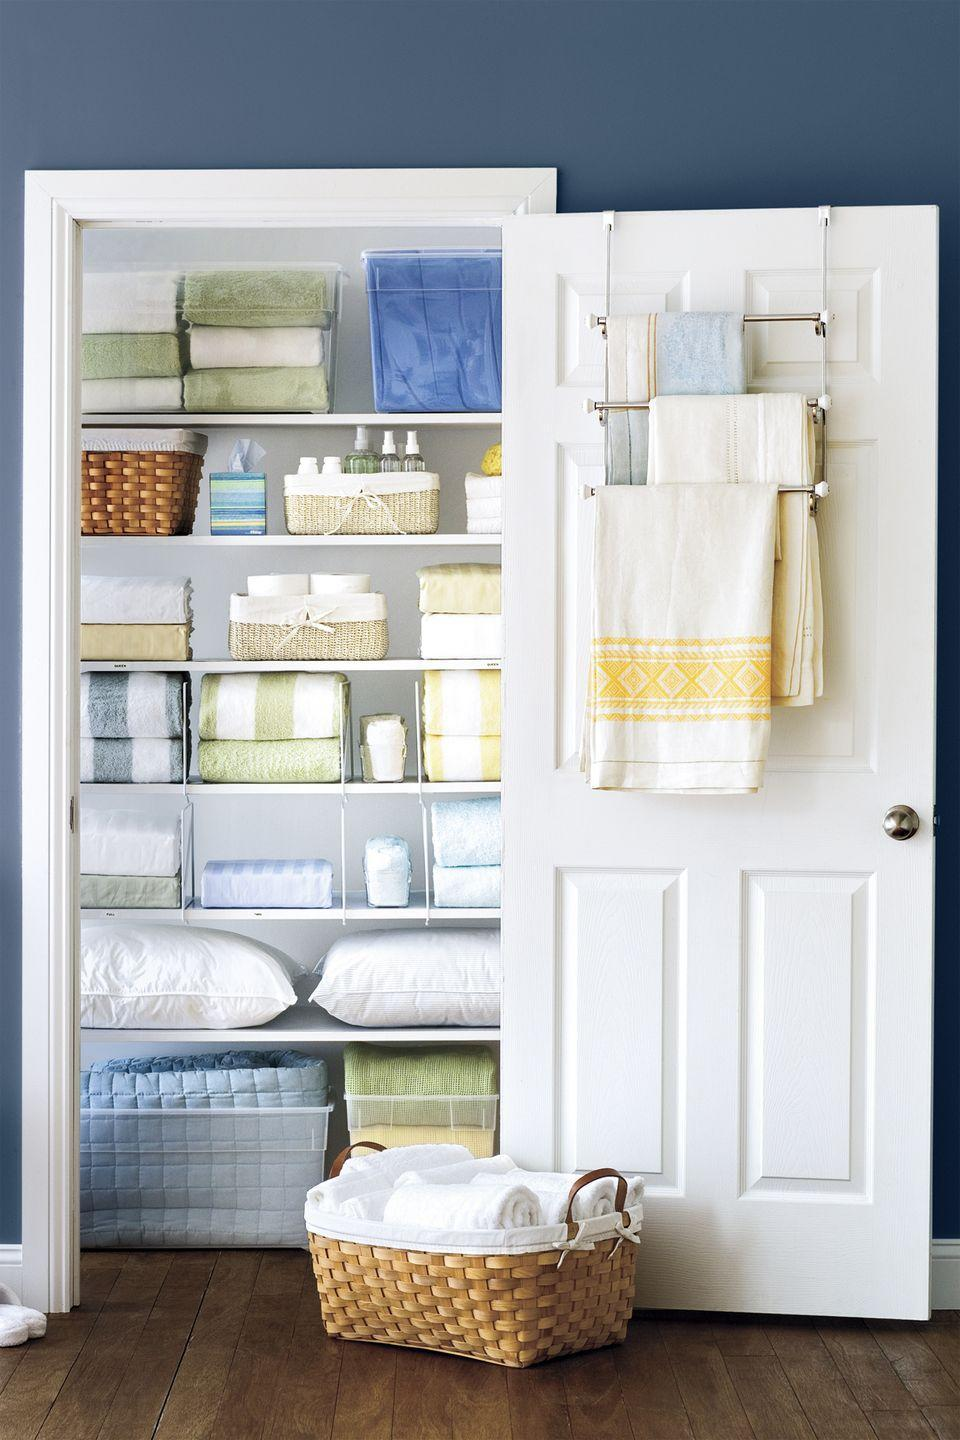 """<p>They're not just for bathrooms. An over-the-door hanger creates out-of-sight storage space for extra tablecloths, throws, or towels. </p><p><a class=""""link rapid-noclick-resp"""" href=""""https://www.amazon.com/Franklin-Brass-193153-FN-Triple-Nickel/dp/B01JUD4PUI/?tag=syn-yahoo-20&ascsubtag=%5Bartid%7C10055.g.2610%5Bsrc%7Cyahoo-us"""" rel=""""nofollow noopener"""" target=""""_blank"""" data-ylk=""""slk:SHOP TOWEL RACKS"""">SHOP TOWEL RACKS</a></p><p><strong>RELATED: </strong><a href=""""https://www.goodhousekeeping.com/home/organizing/g2911/linen-closet-organization-tricks"""" rel=""""nofollow noopener"""" target=""""_blank"""" data-ylk=""""slk:Seriously Smart Linen Closet Organization Ideas"""" class=""""link rapid-noclick-resp"""">Seriously Smart Linen Closet Organization Ideas</a></p>"""